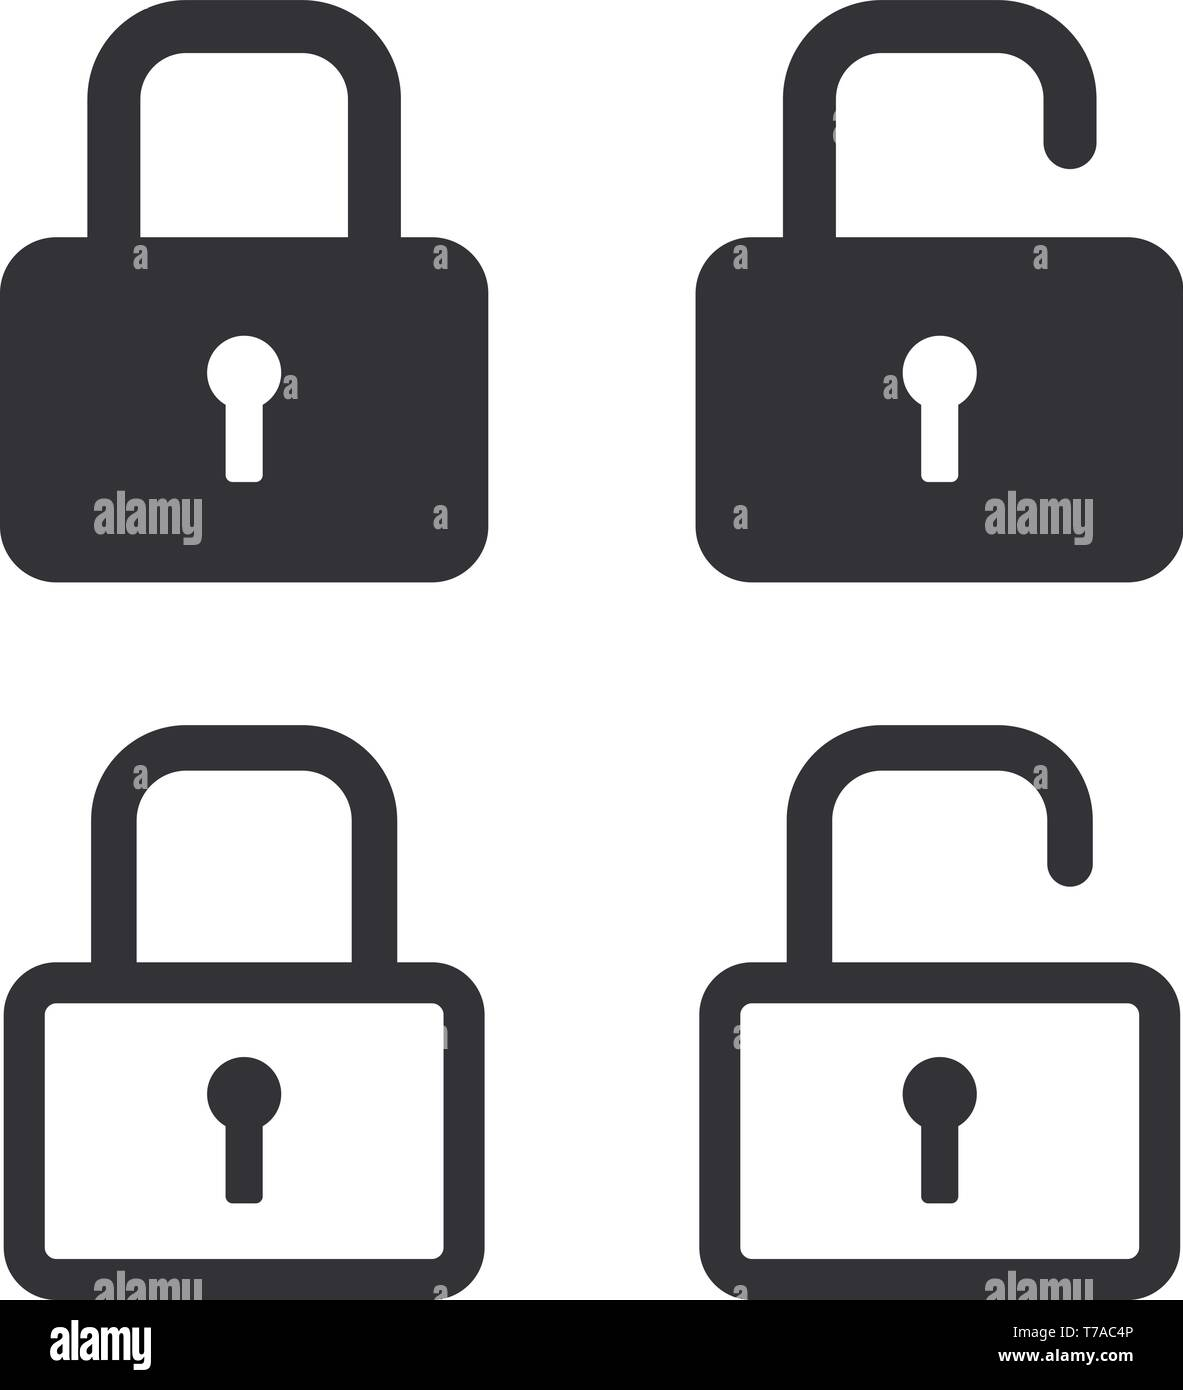 Locked and unlocked version of security locks icons vector illustrations - Stock Vector